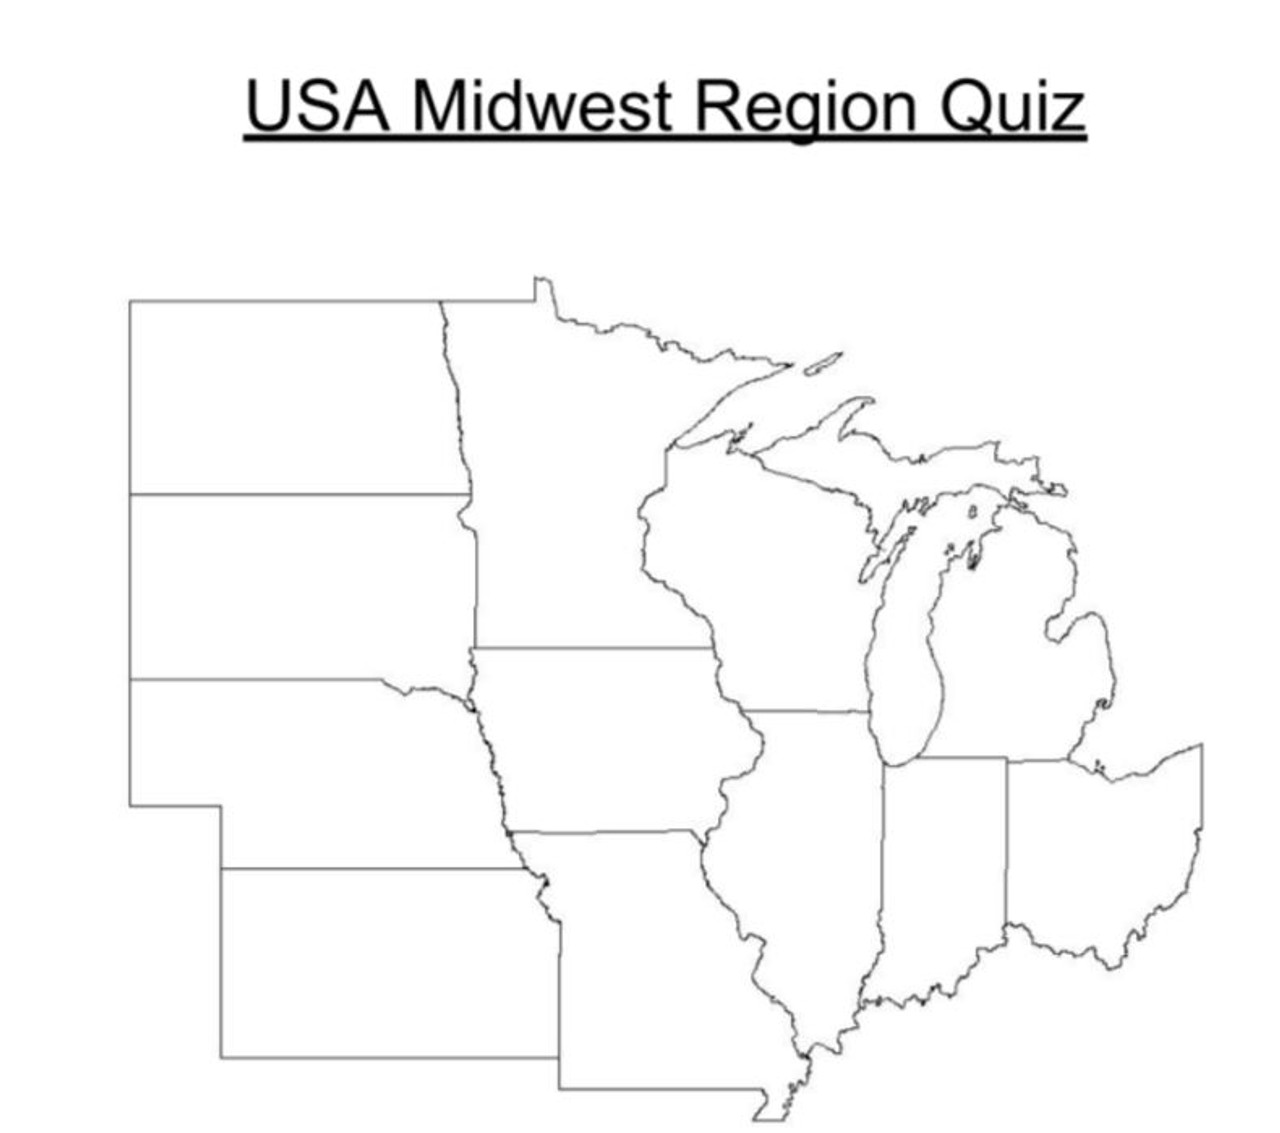 small resolution of USA Midwest Region Quiz - Amped Up Learning